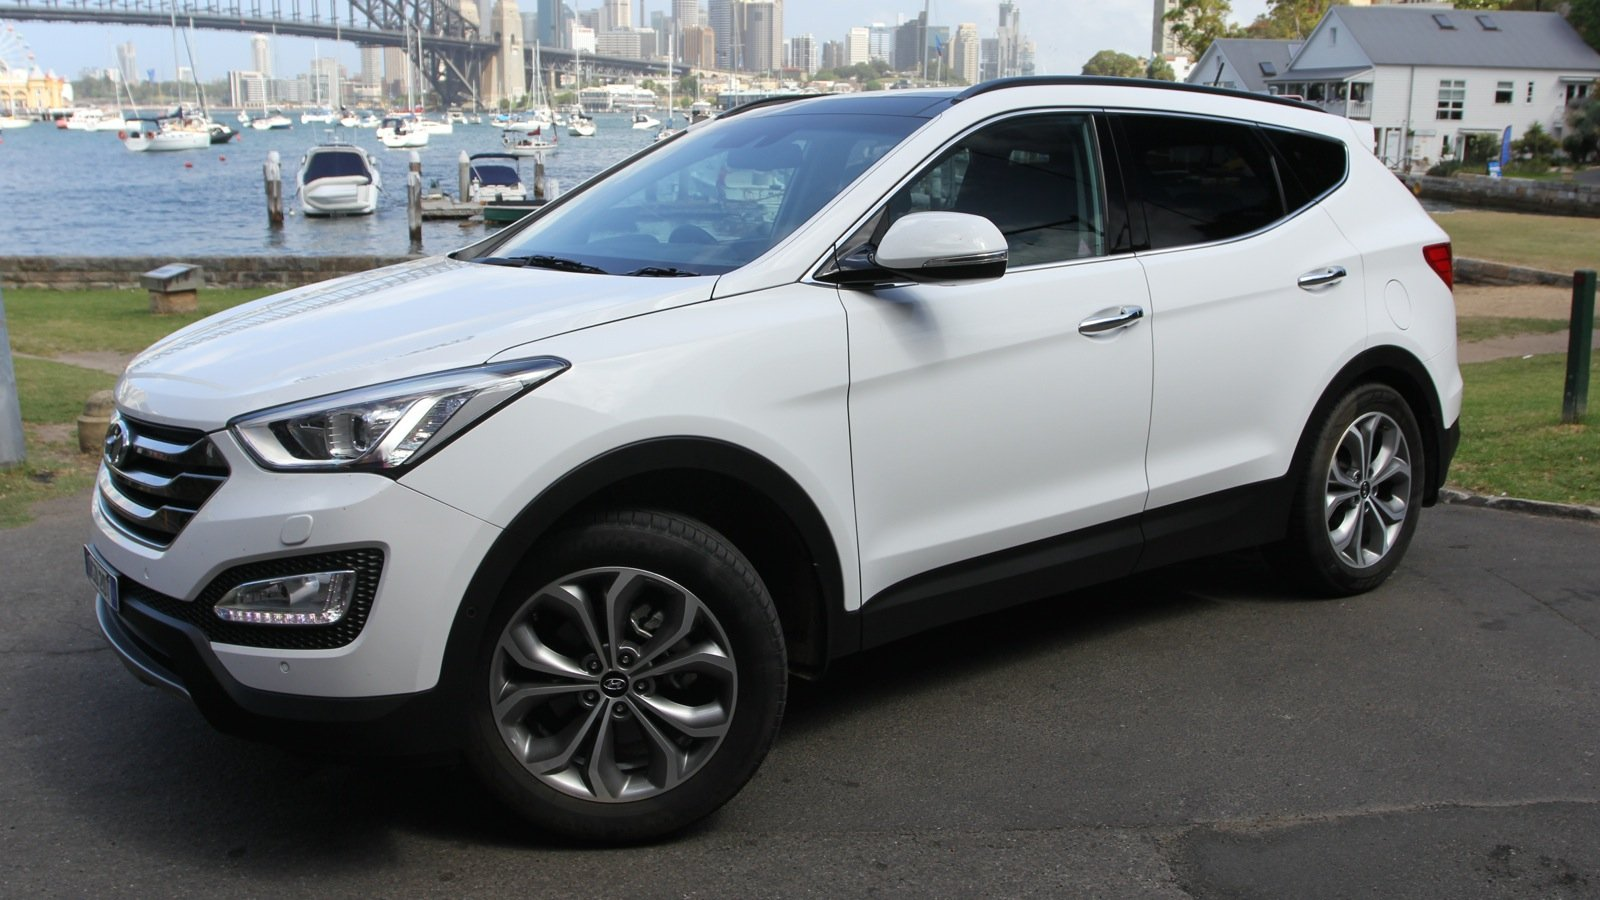 2015 hyundai santa fe review highlander photos caradvice